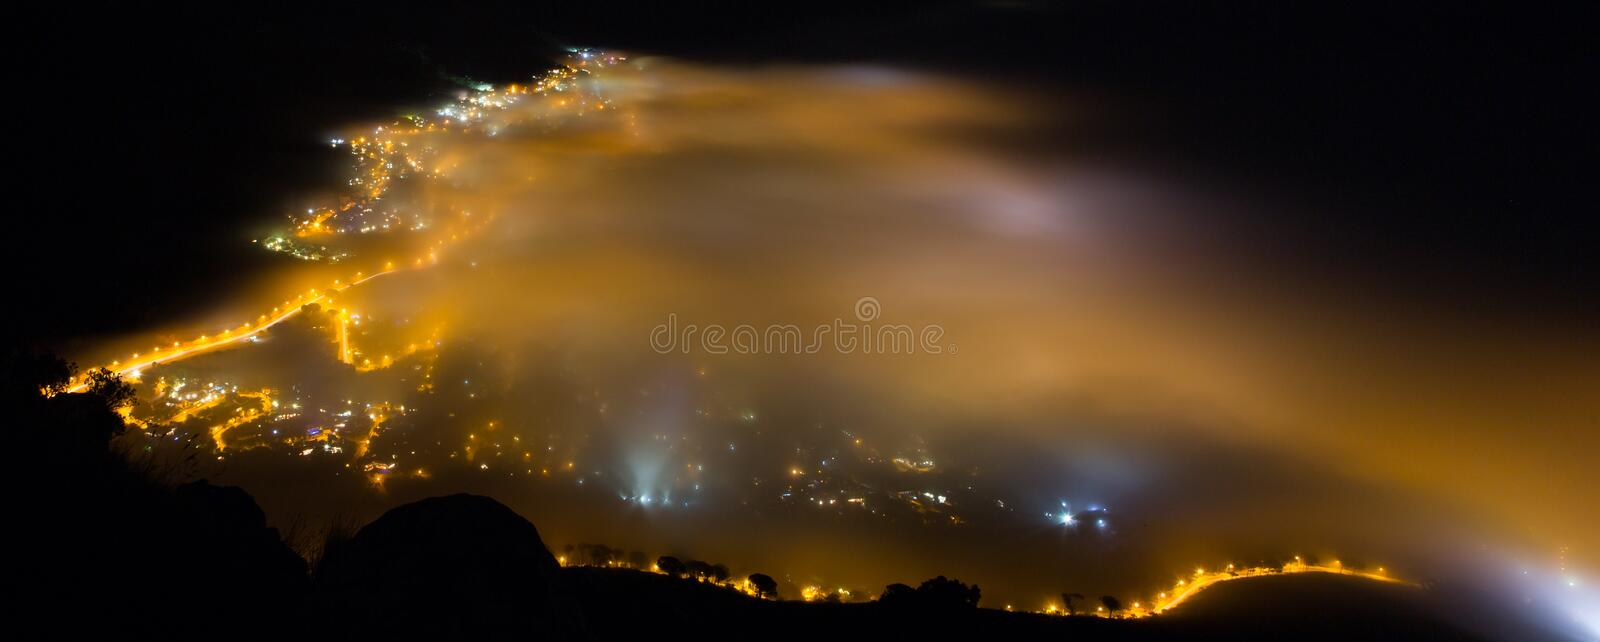 Camps Bay Fog - Cape Town, South Africa stock image